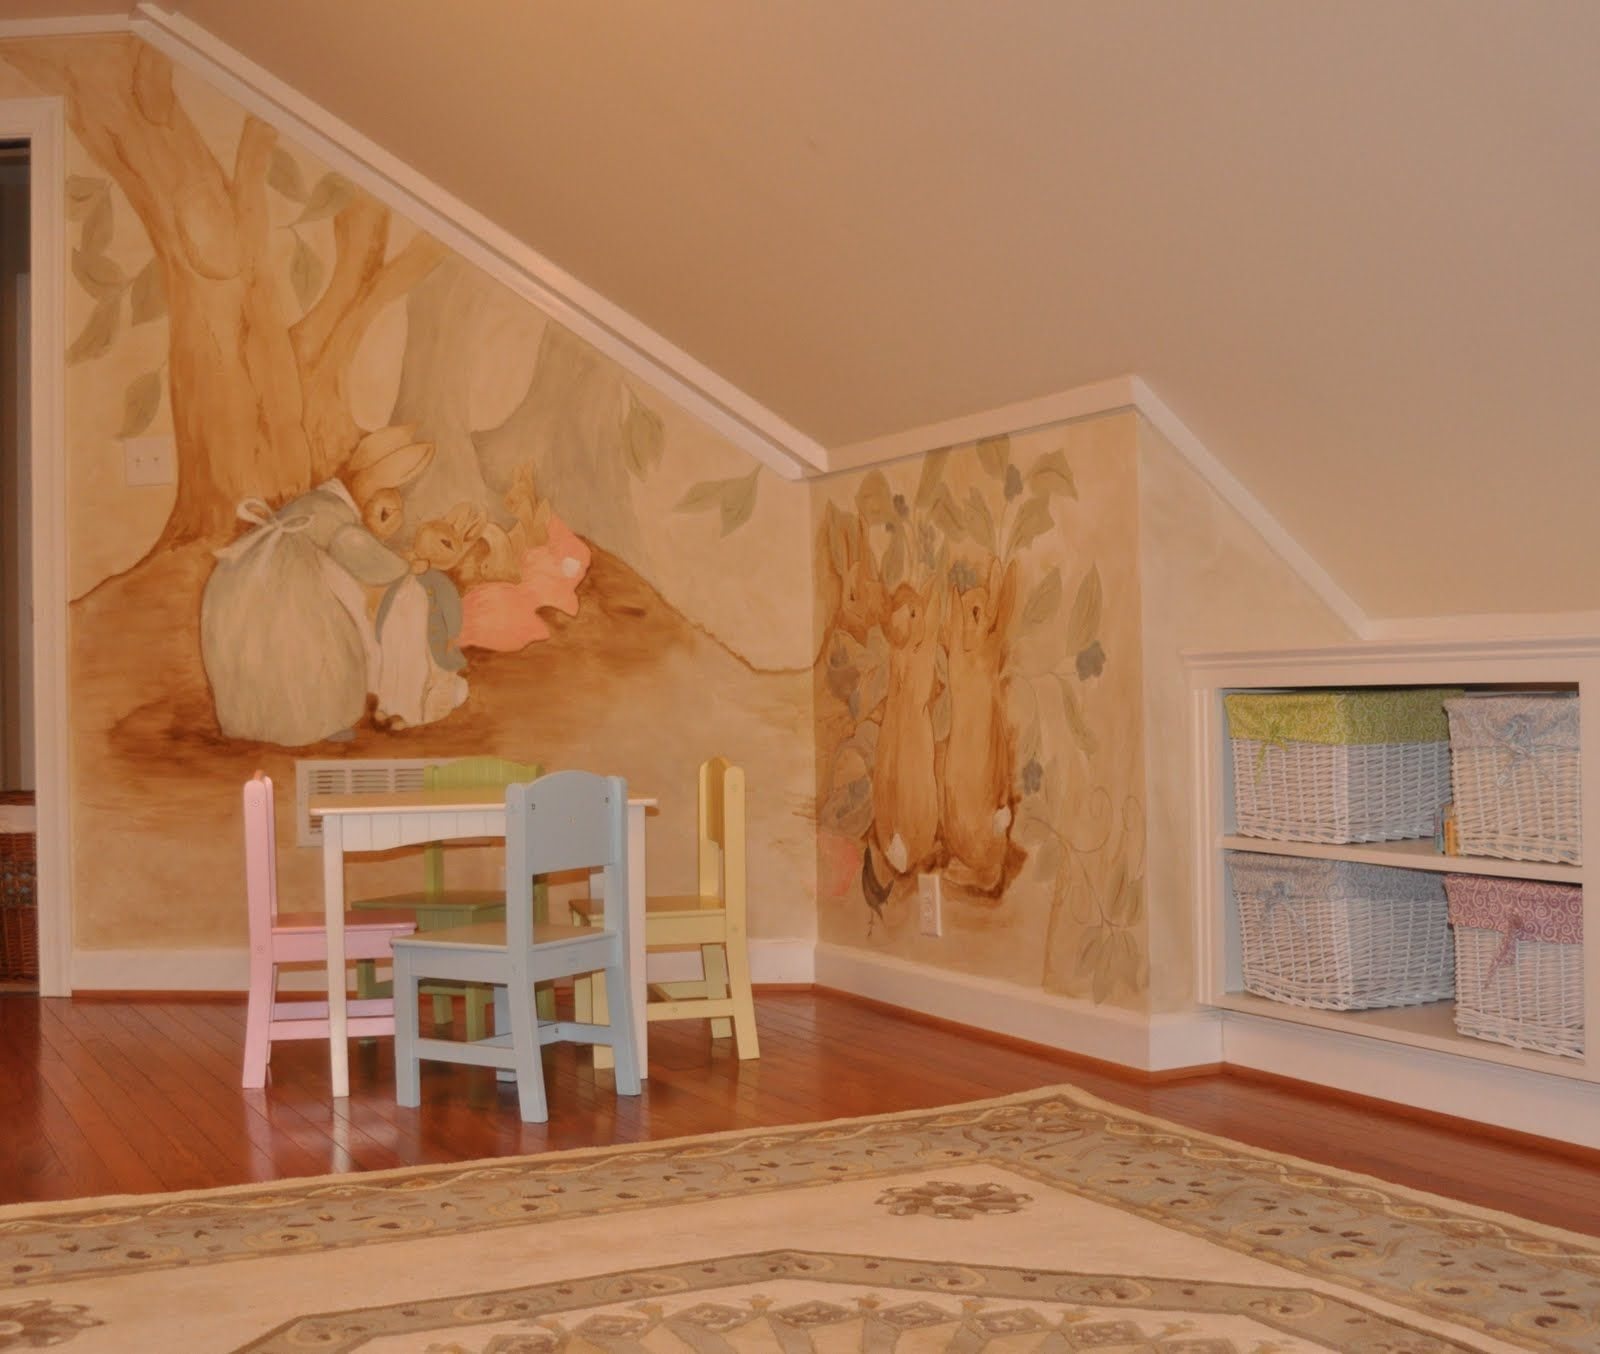 Murals And More By Linda C Miller From Williamsburg, Virginia: Peter Rabbit  Mural,